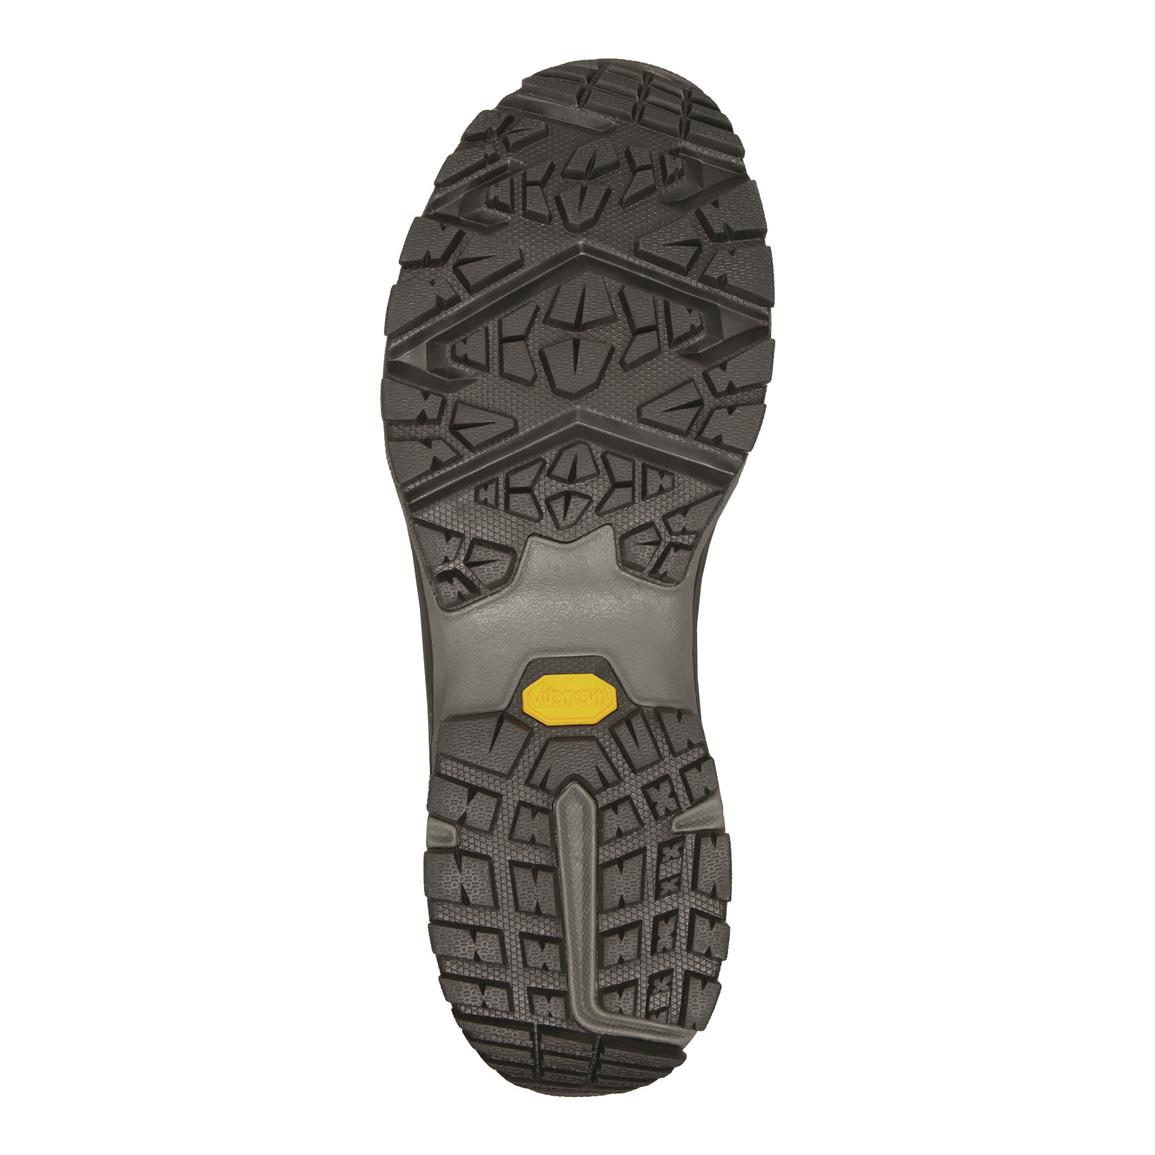 Vibram sticky rubber outsole hangs on like a rock-climbing shoe